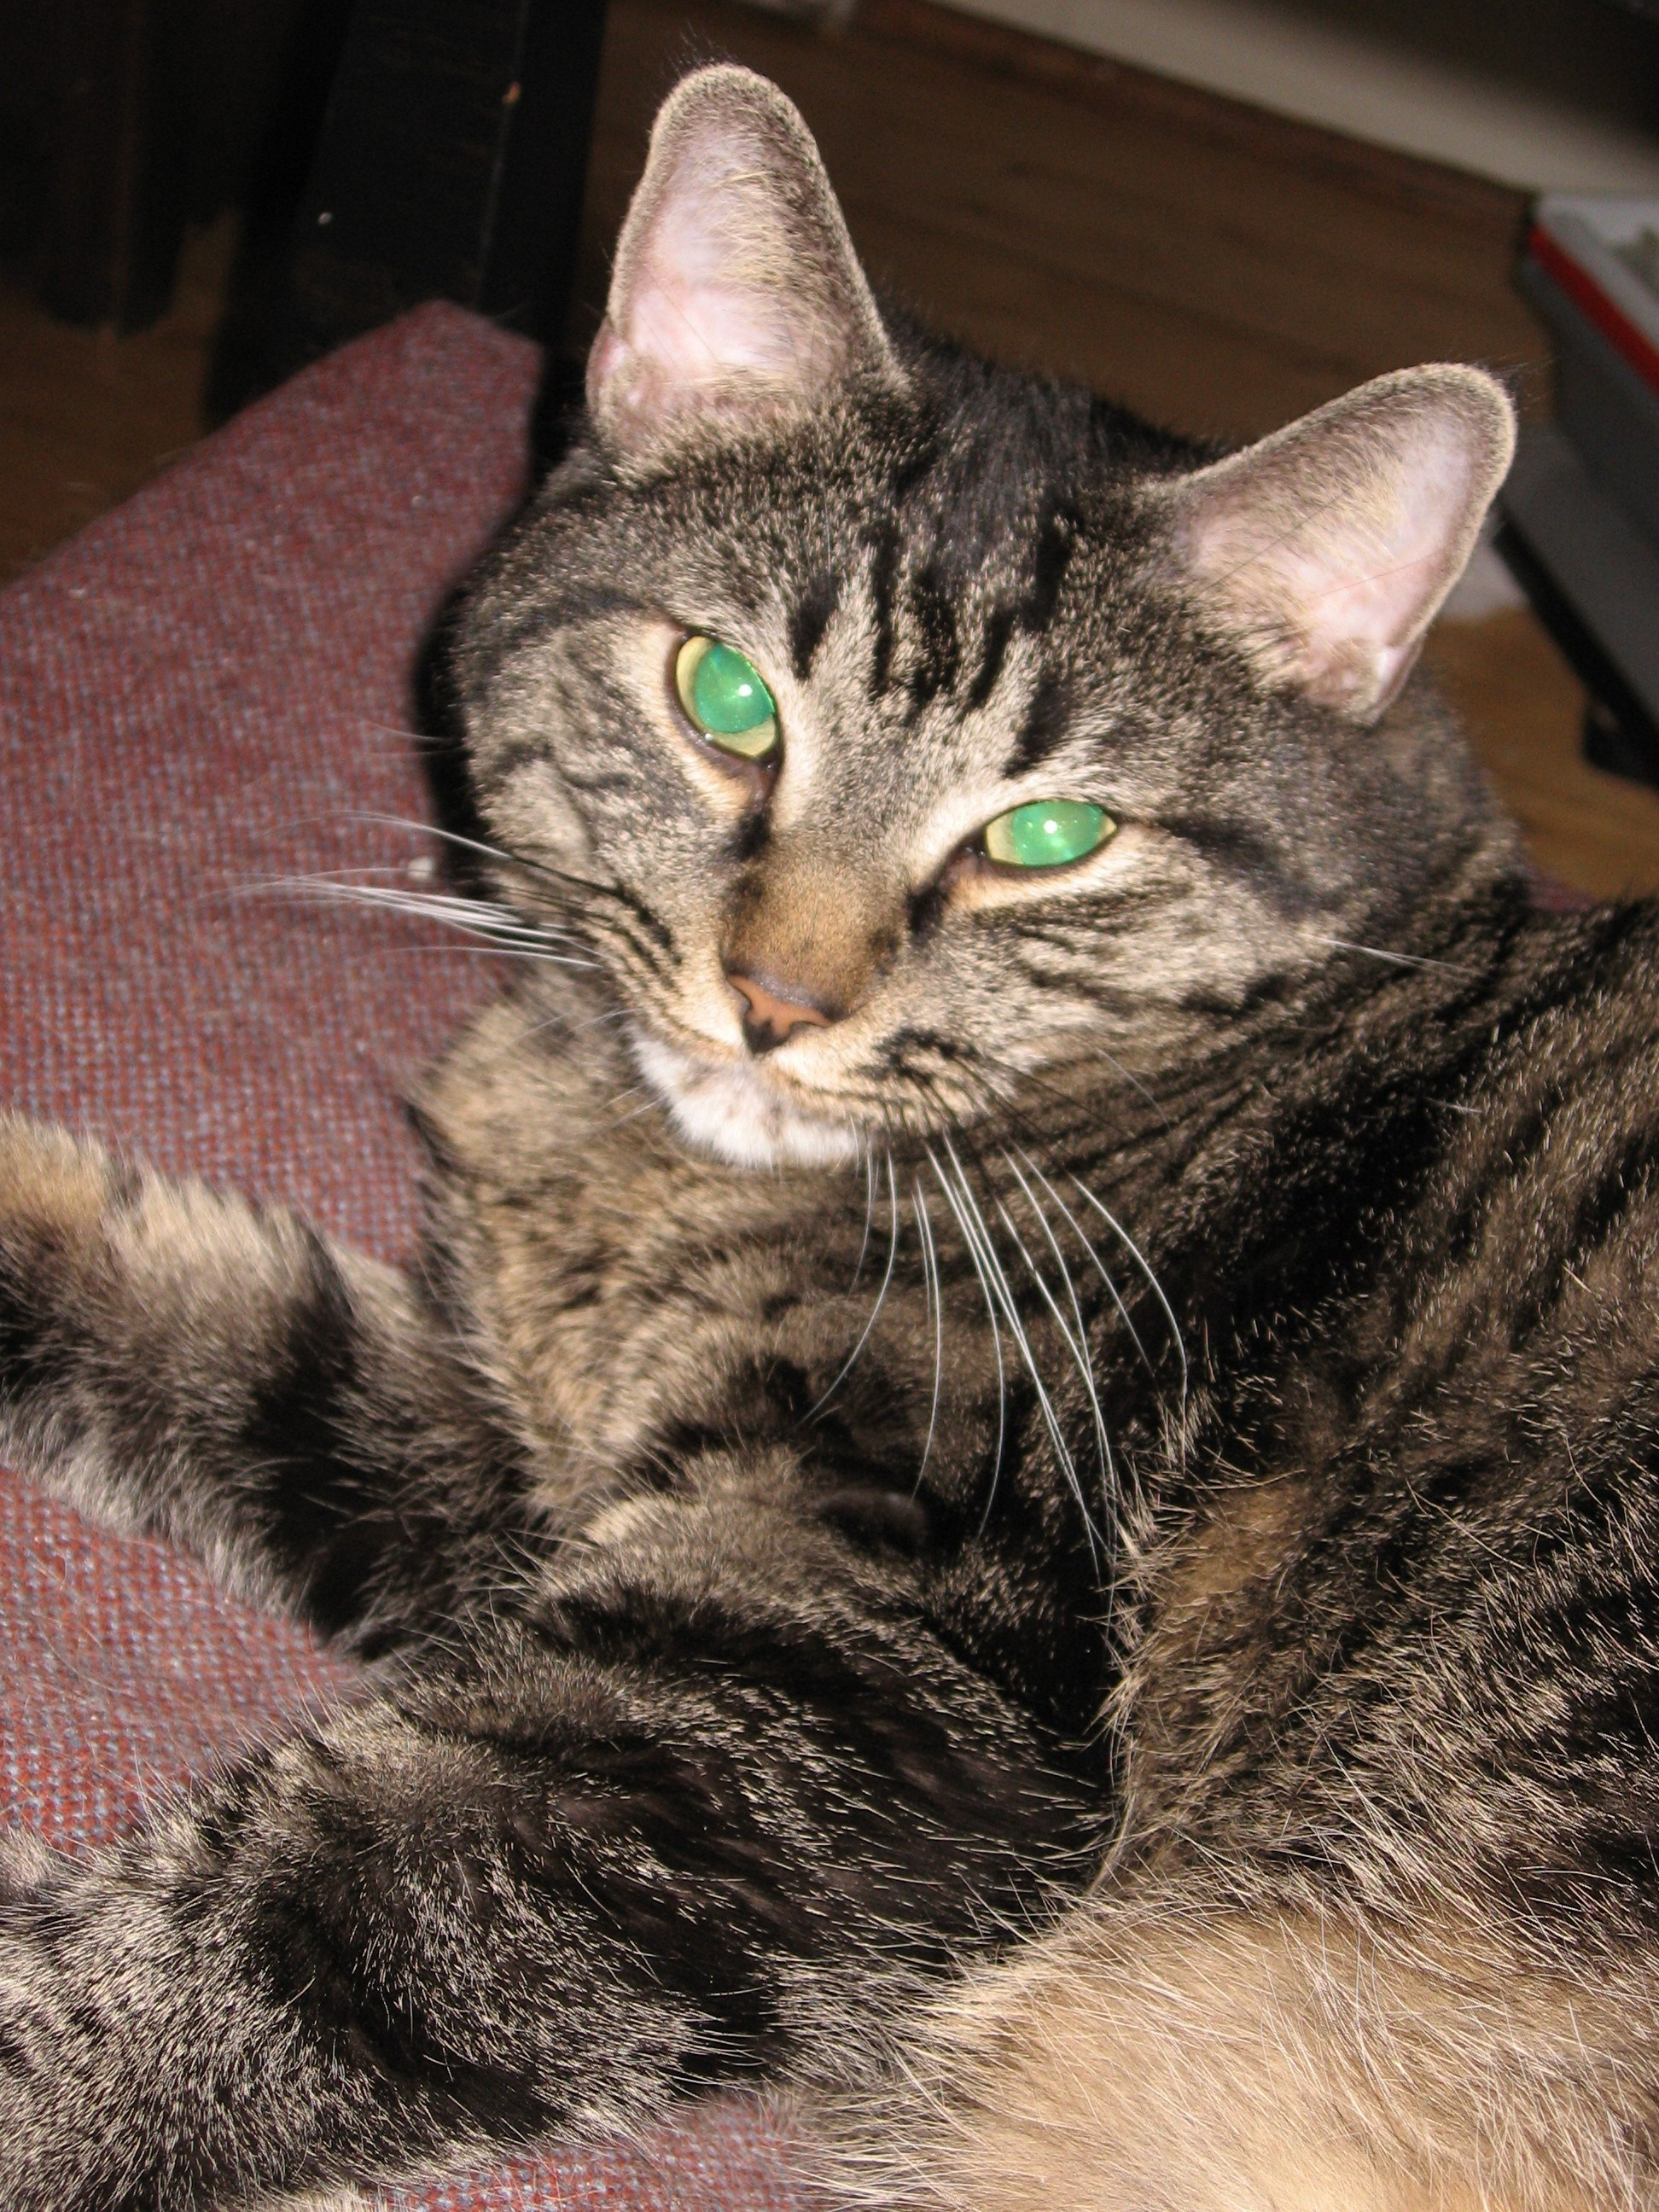 The Cat Formerly Known As Pyewackett the Magnificent *(now referred to as Pyewackett the Obnoxious)